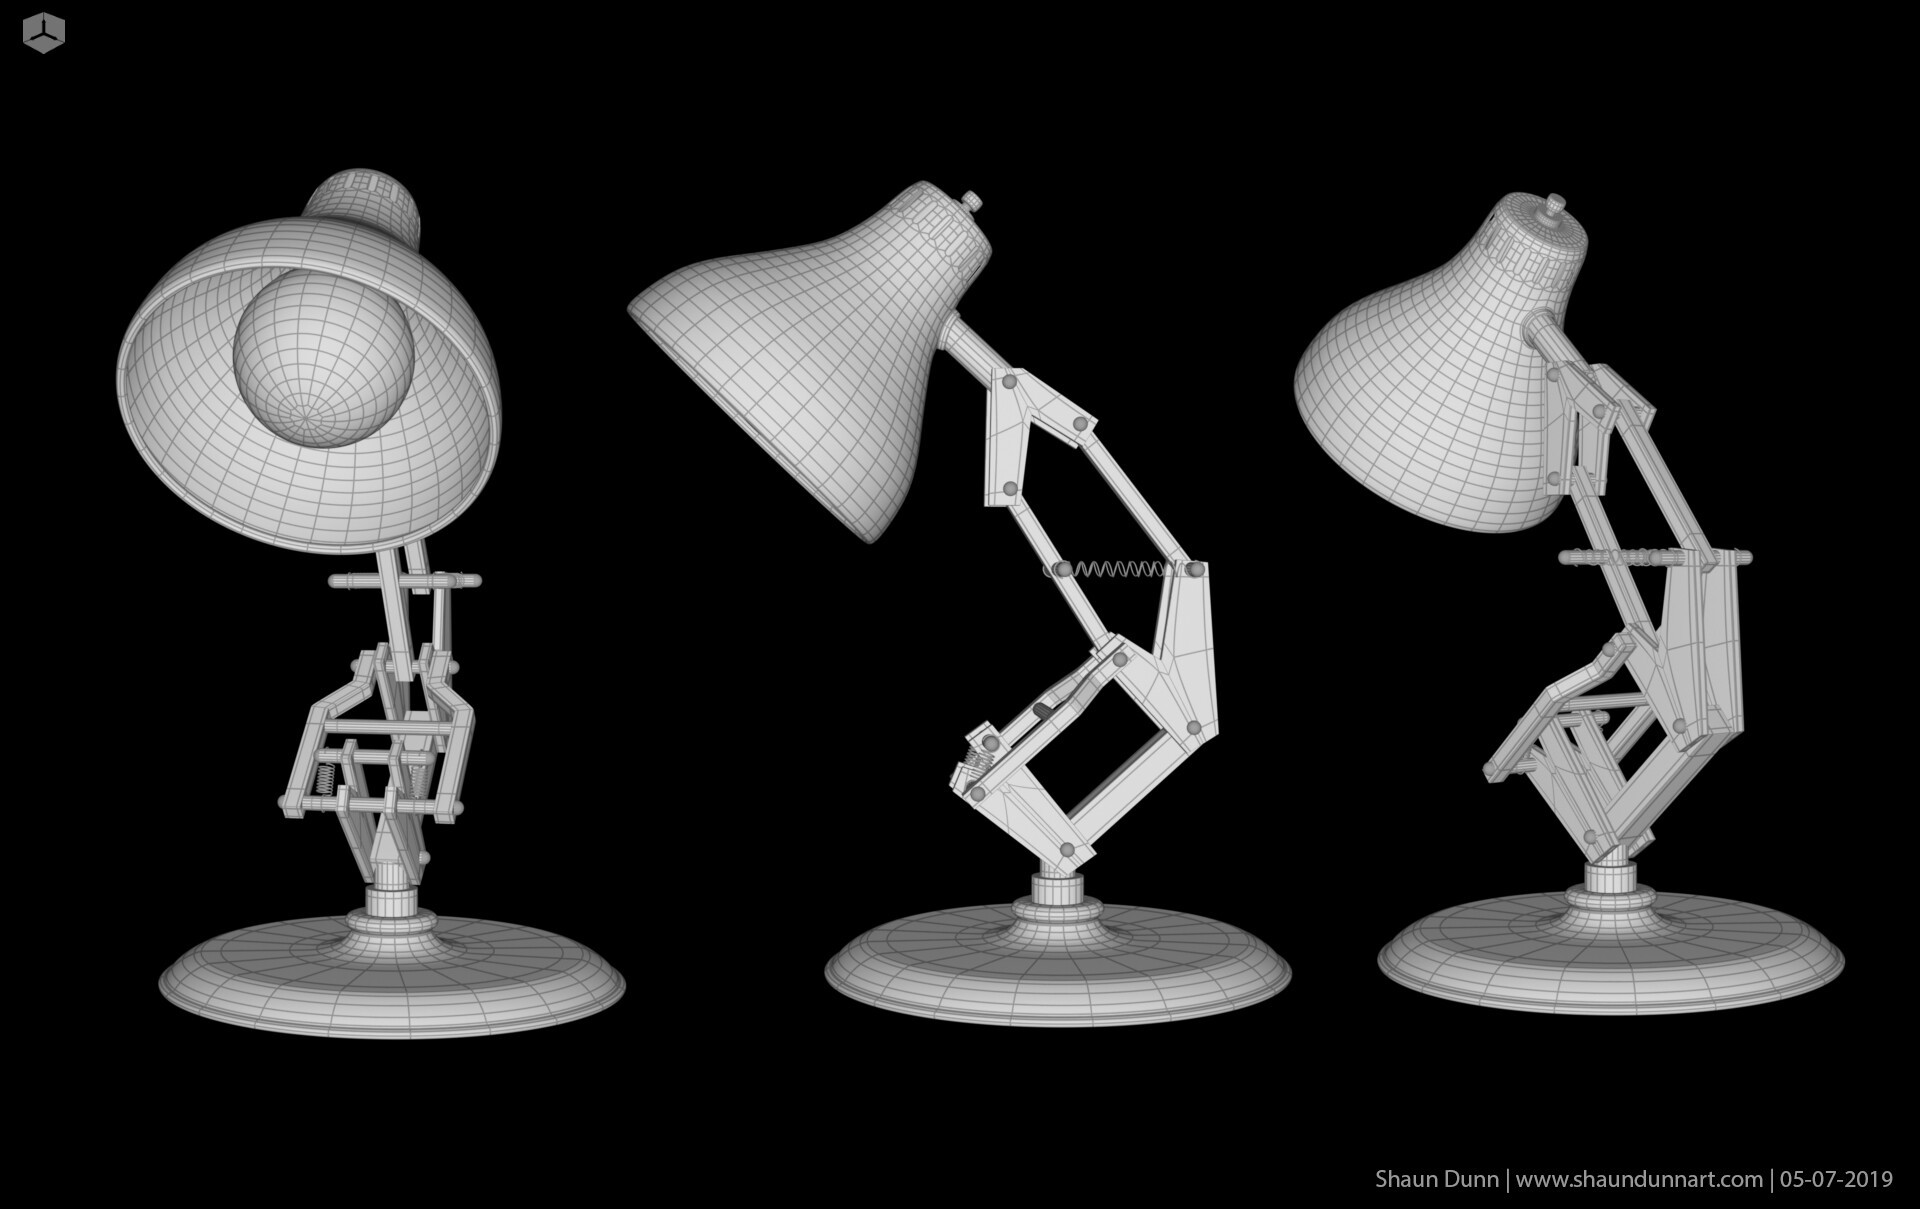 The Luxo Jr 3D model is another prop I created to help support my story.